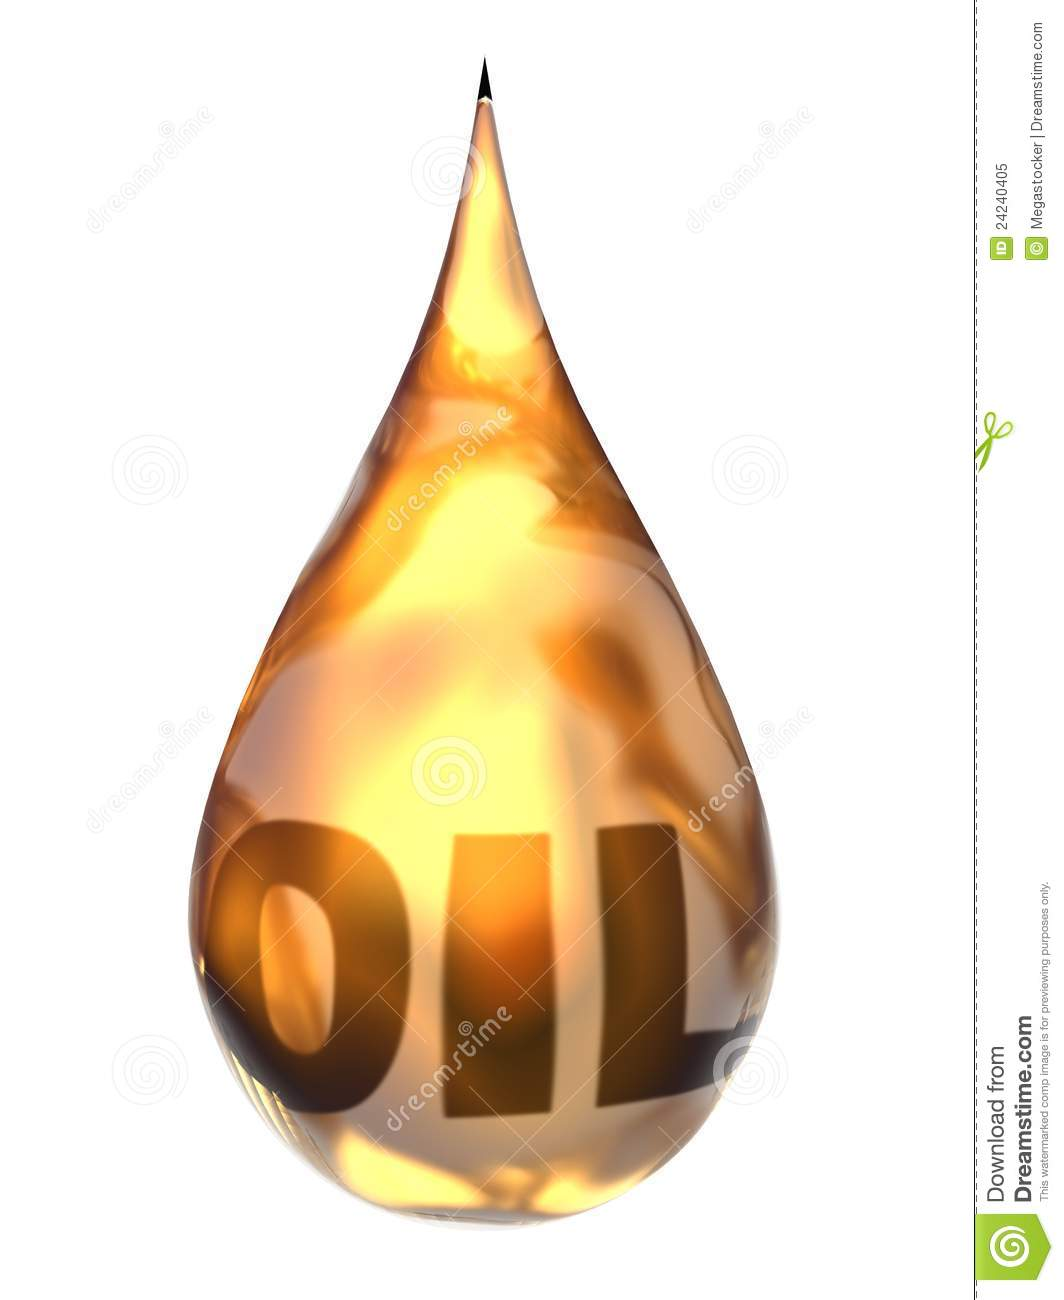 Crude oil refinery business plan